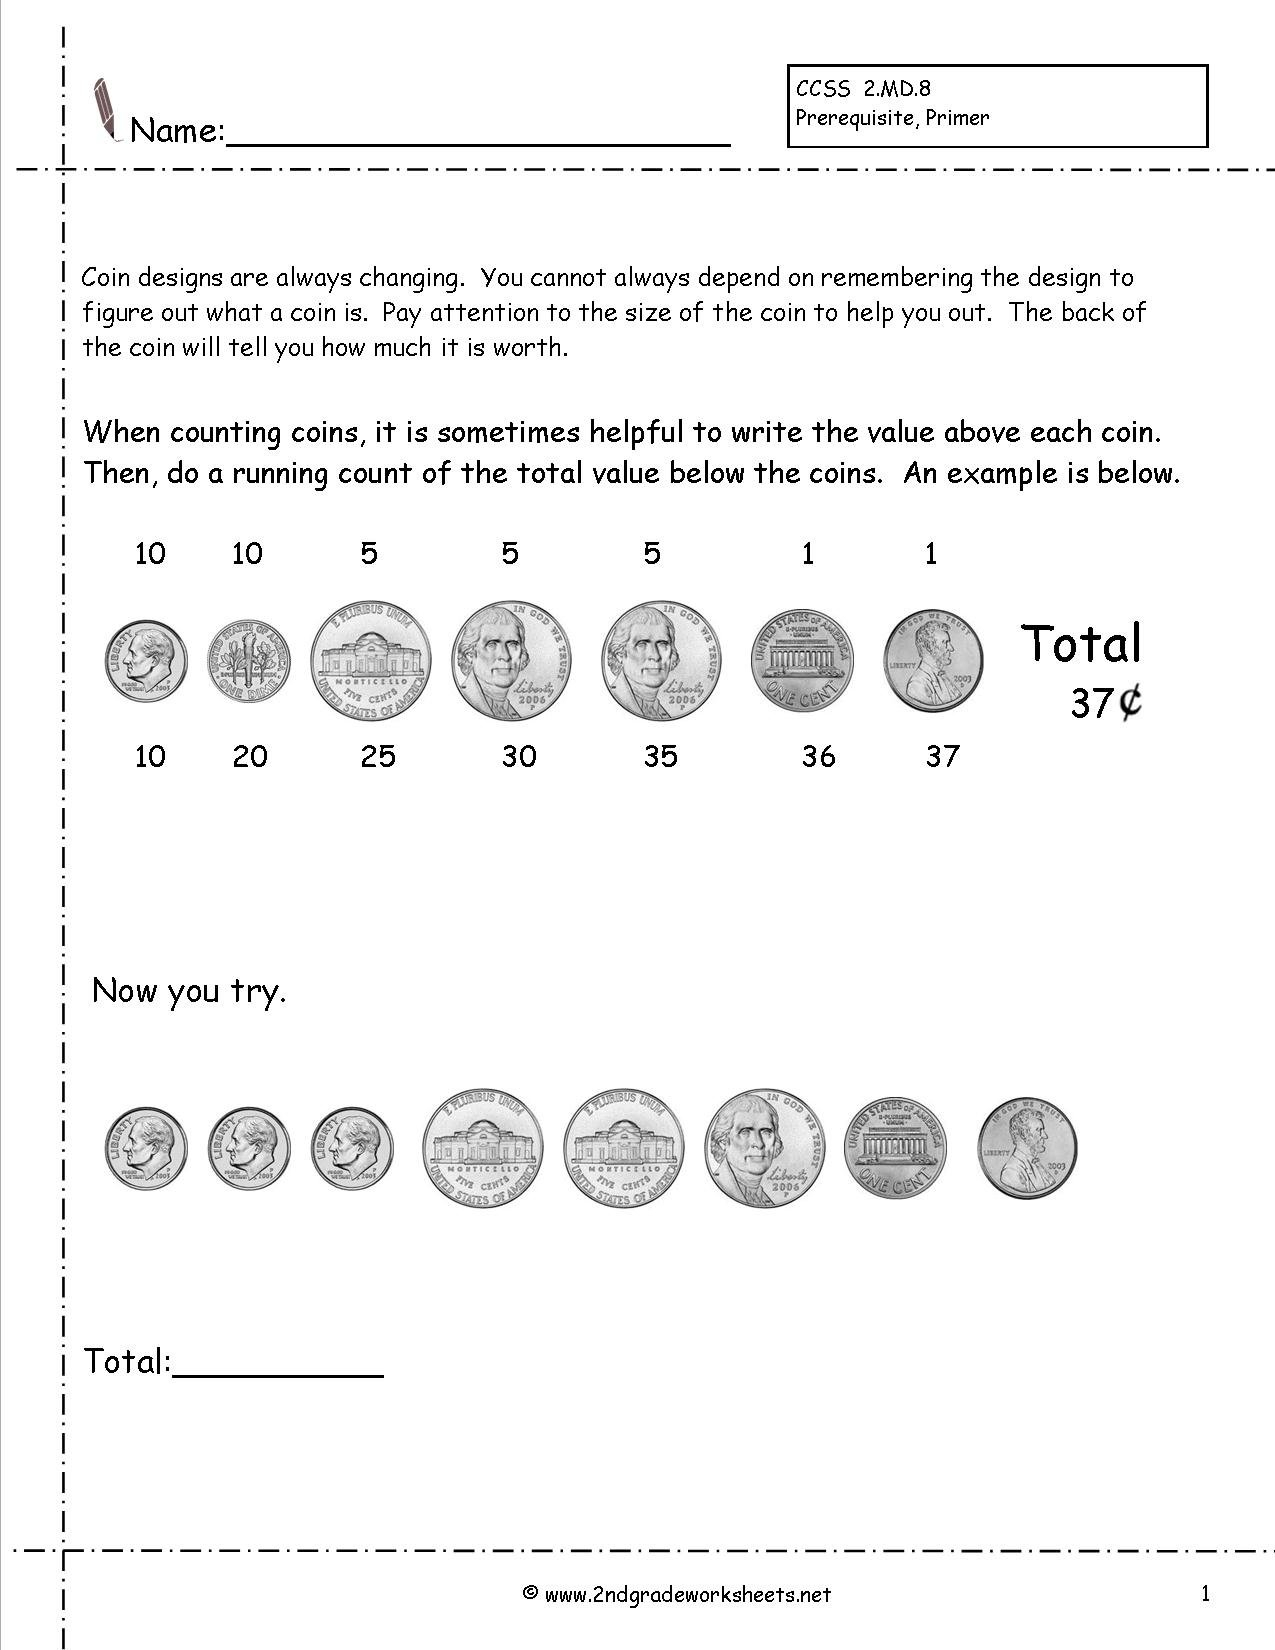 Counting Coins And Money Worksheets And Printouts Throughout Coin Values Worksheet